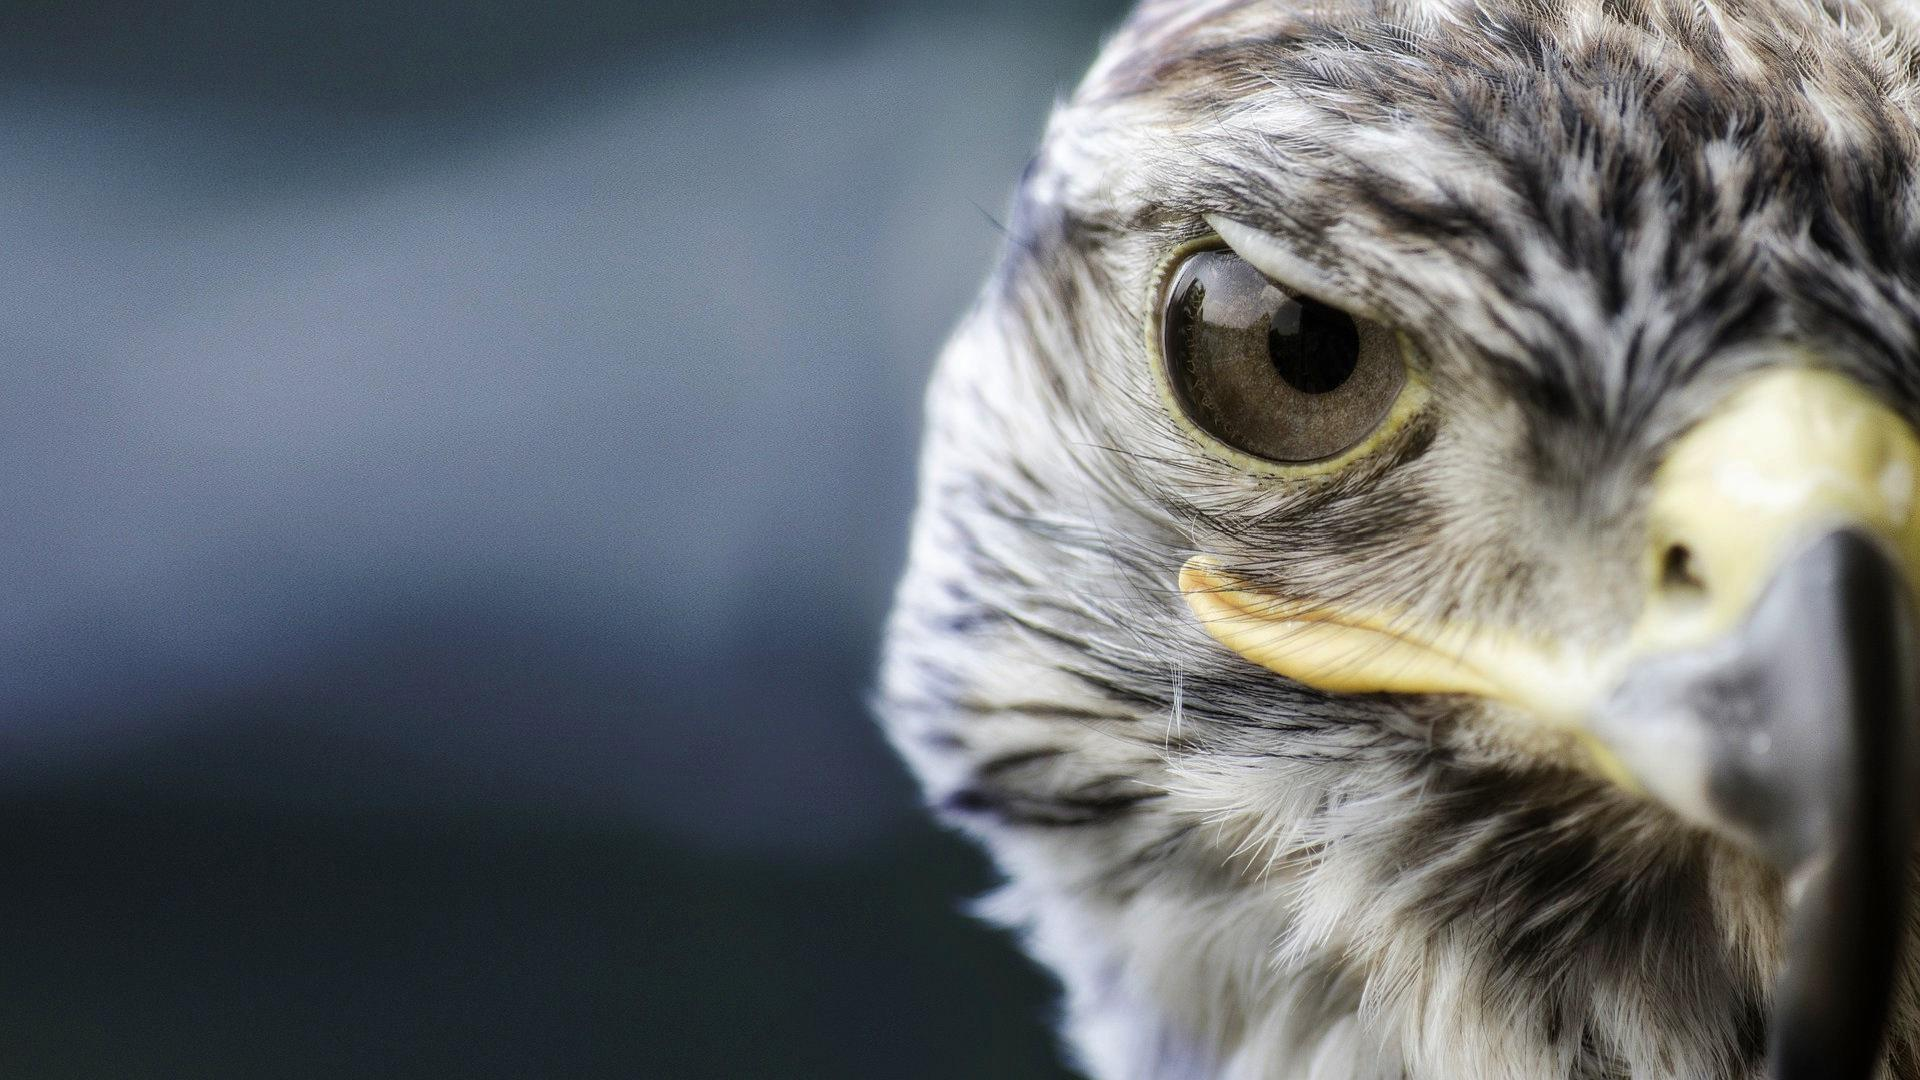 Wallpaper Hd Animals Wallpaper Pack Falcon Wallpapers High Quality Download Free